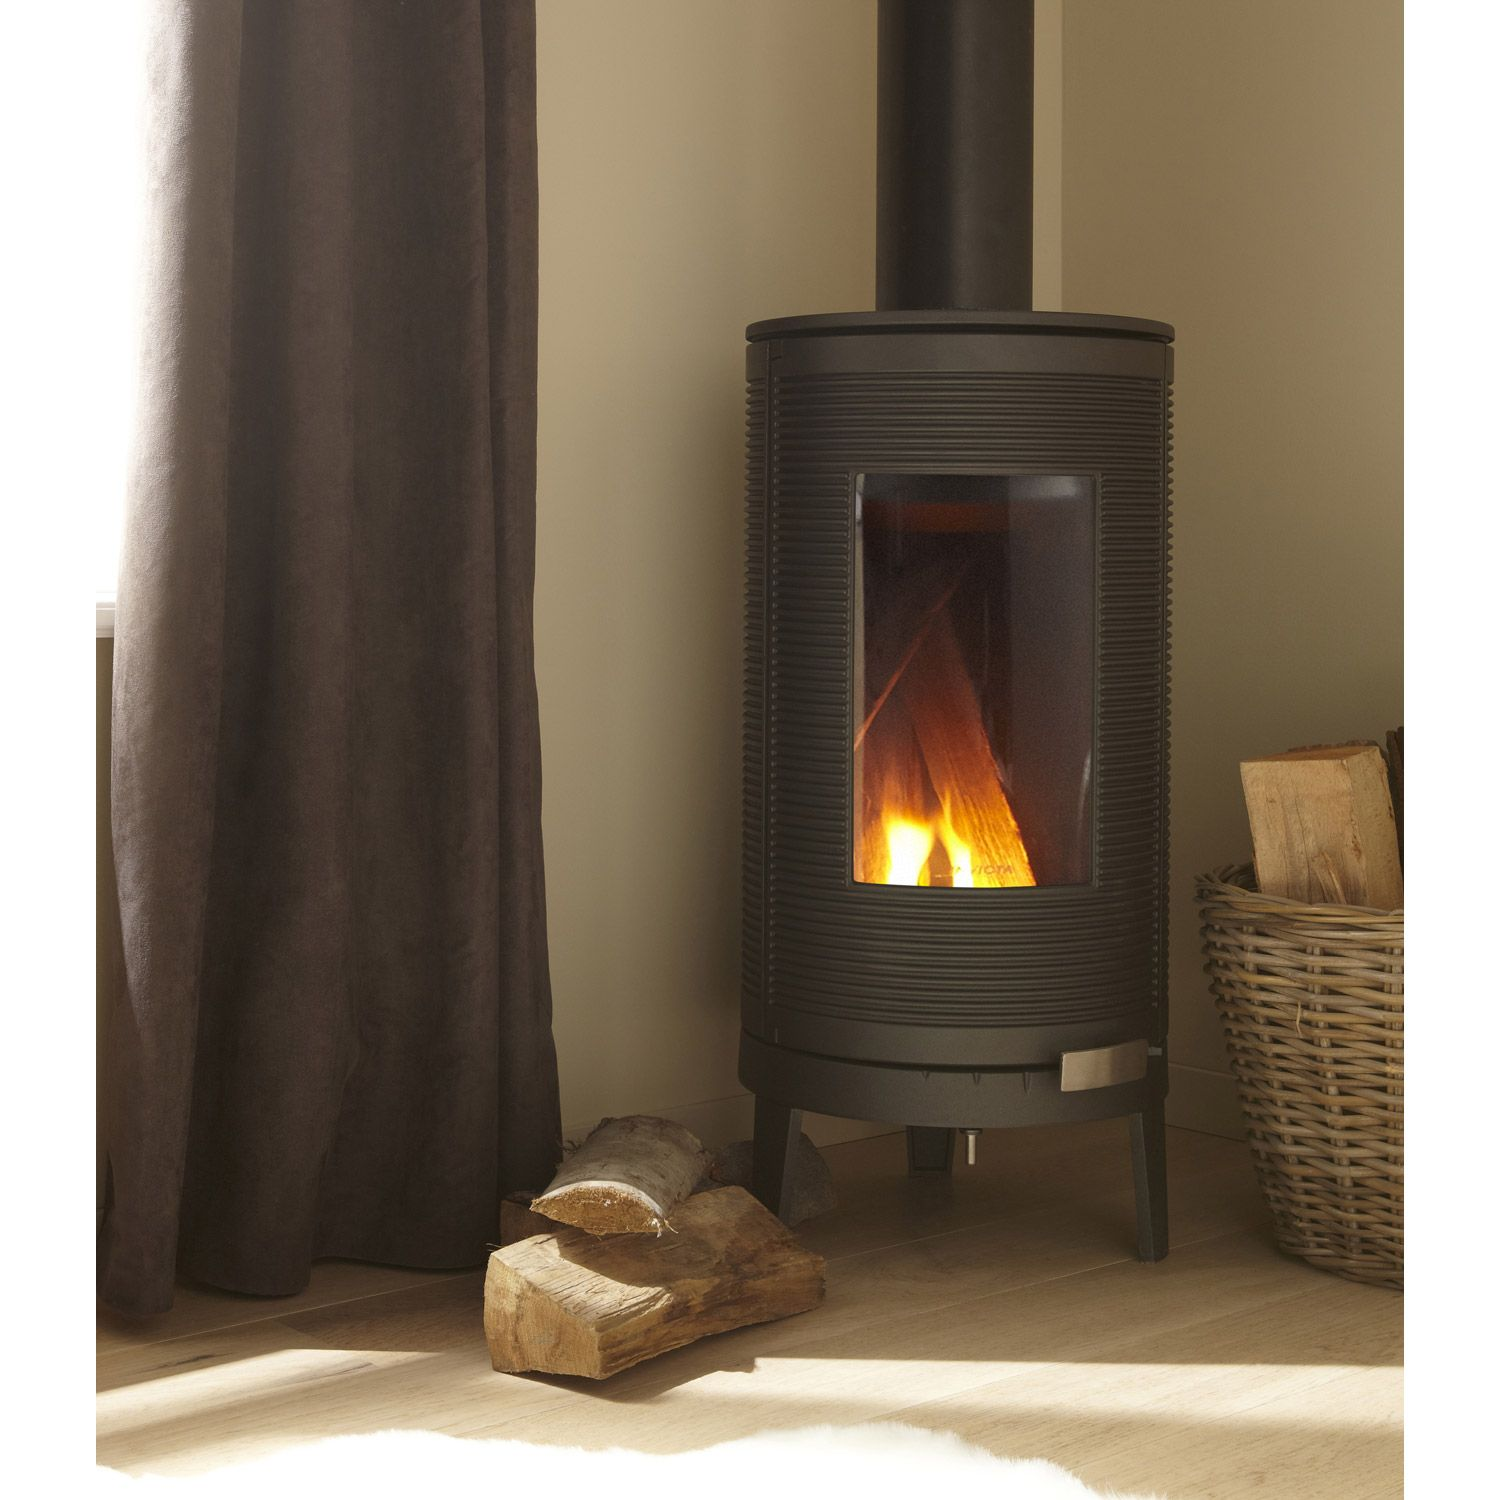 Soldes Cheminees Rene Brisach Poêle à Bois Invicta Okino Anthracite 6105 44 7kw Bollitos